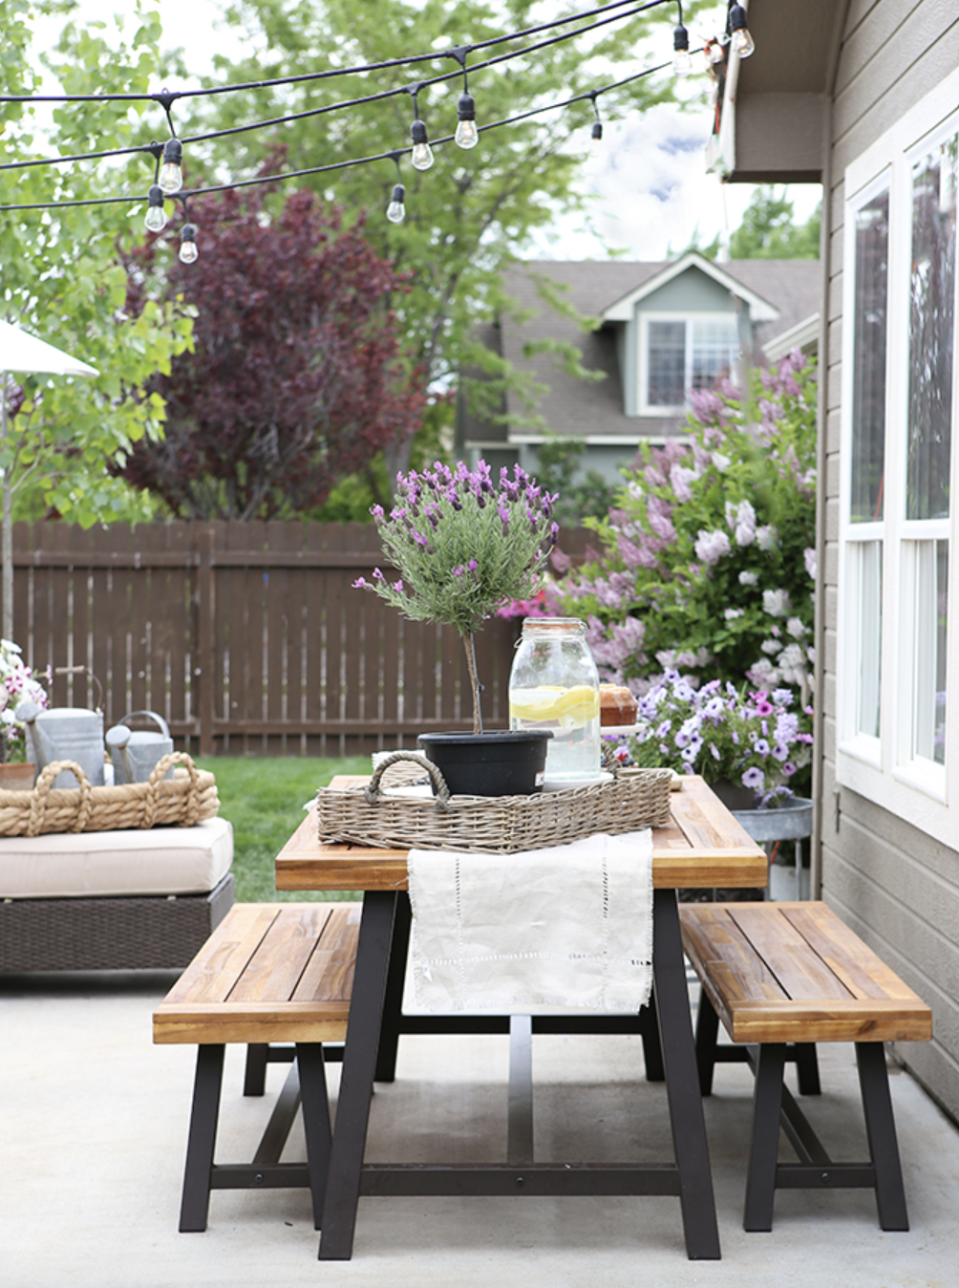 """<p>Host your next garden party in style. A few strands of string lights create a tent-like effect above this outdoor dining table setup that's perfect for spring.</p><p><strong>See more at <a href=""""https://www.ellaclaireinspired.com/summer-patio-makeover-tour/"""" rel=""""nofollow noopener"""" target=""""_blank"""" data-ylk=""""slk:Ella Claire"""" class=""""link rapid-noclick-resp"""">Ella Claire</a>.</strong></p><p><a class=""""link rapid-noclick-resp"""" href=""""https://go.redirectingat.com?id=74968X1596630&url=https%3A%2F%2Fwww.wayfair.com%2Fkeyword.php%3Fkeyword%3Doutdoor%2Bdining%2Bsets&sref=https%3A%2F%2Fwww.countryliving.com%2Fgardening%2Fnews%2Fg3404%2Fbackyard-string-lights%2F"""" rel=""""nofollow noopener"""" target=""""_blank"""" data-ylk=""""slk:SHOP OUTDOOR DINING SETS"""">SHOP OUTDOOR DINING SETS</a></p>"""